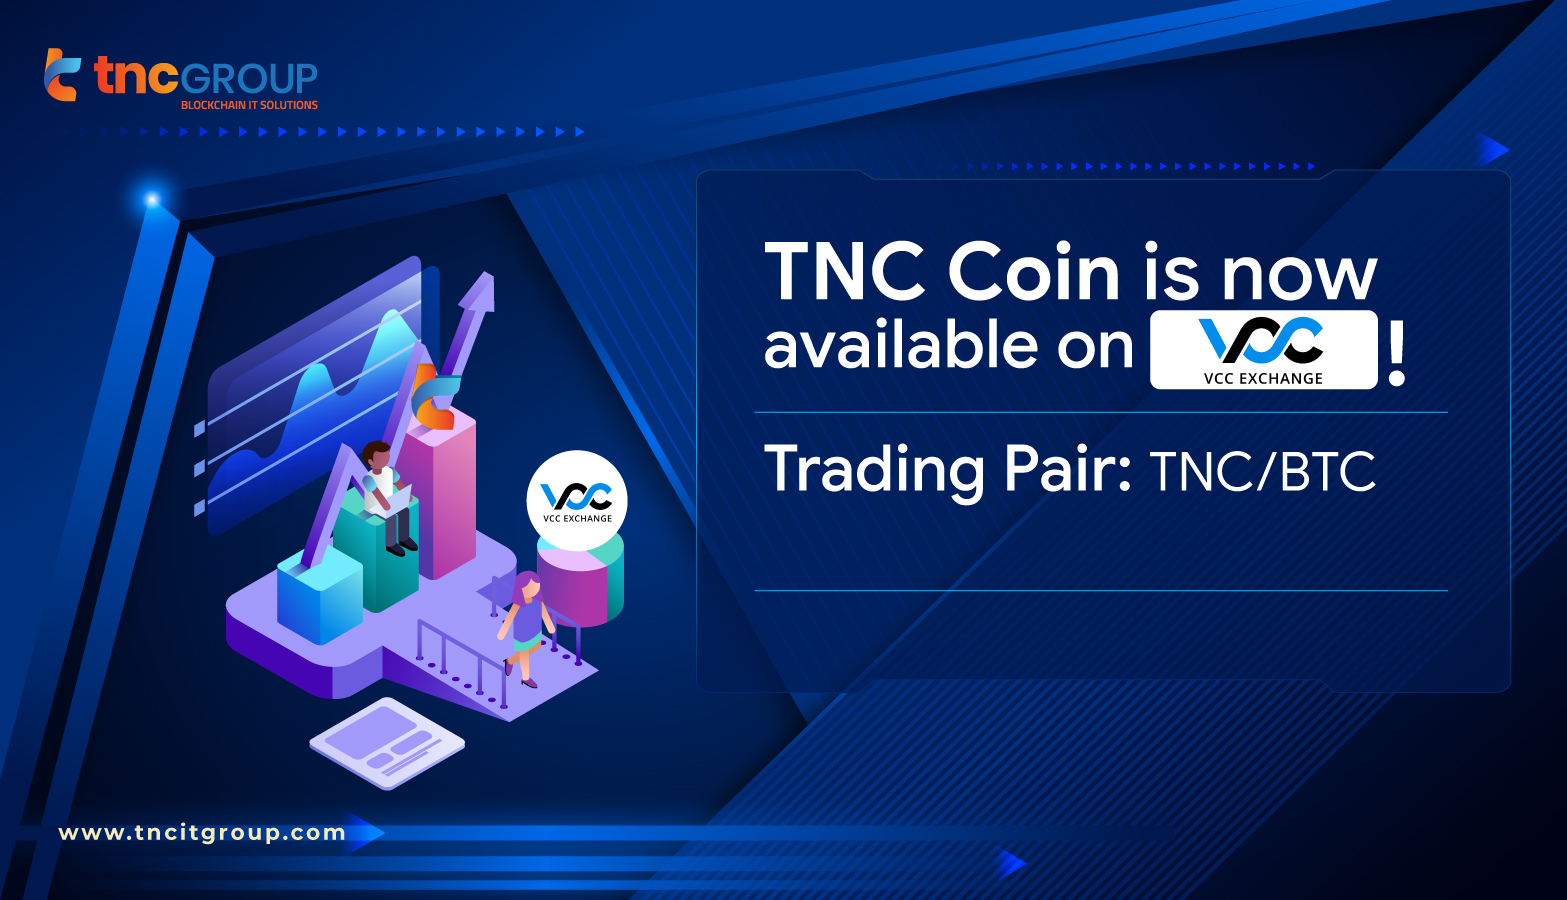 TNC Coin is now accepted on VCC Exchange